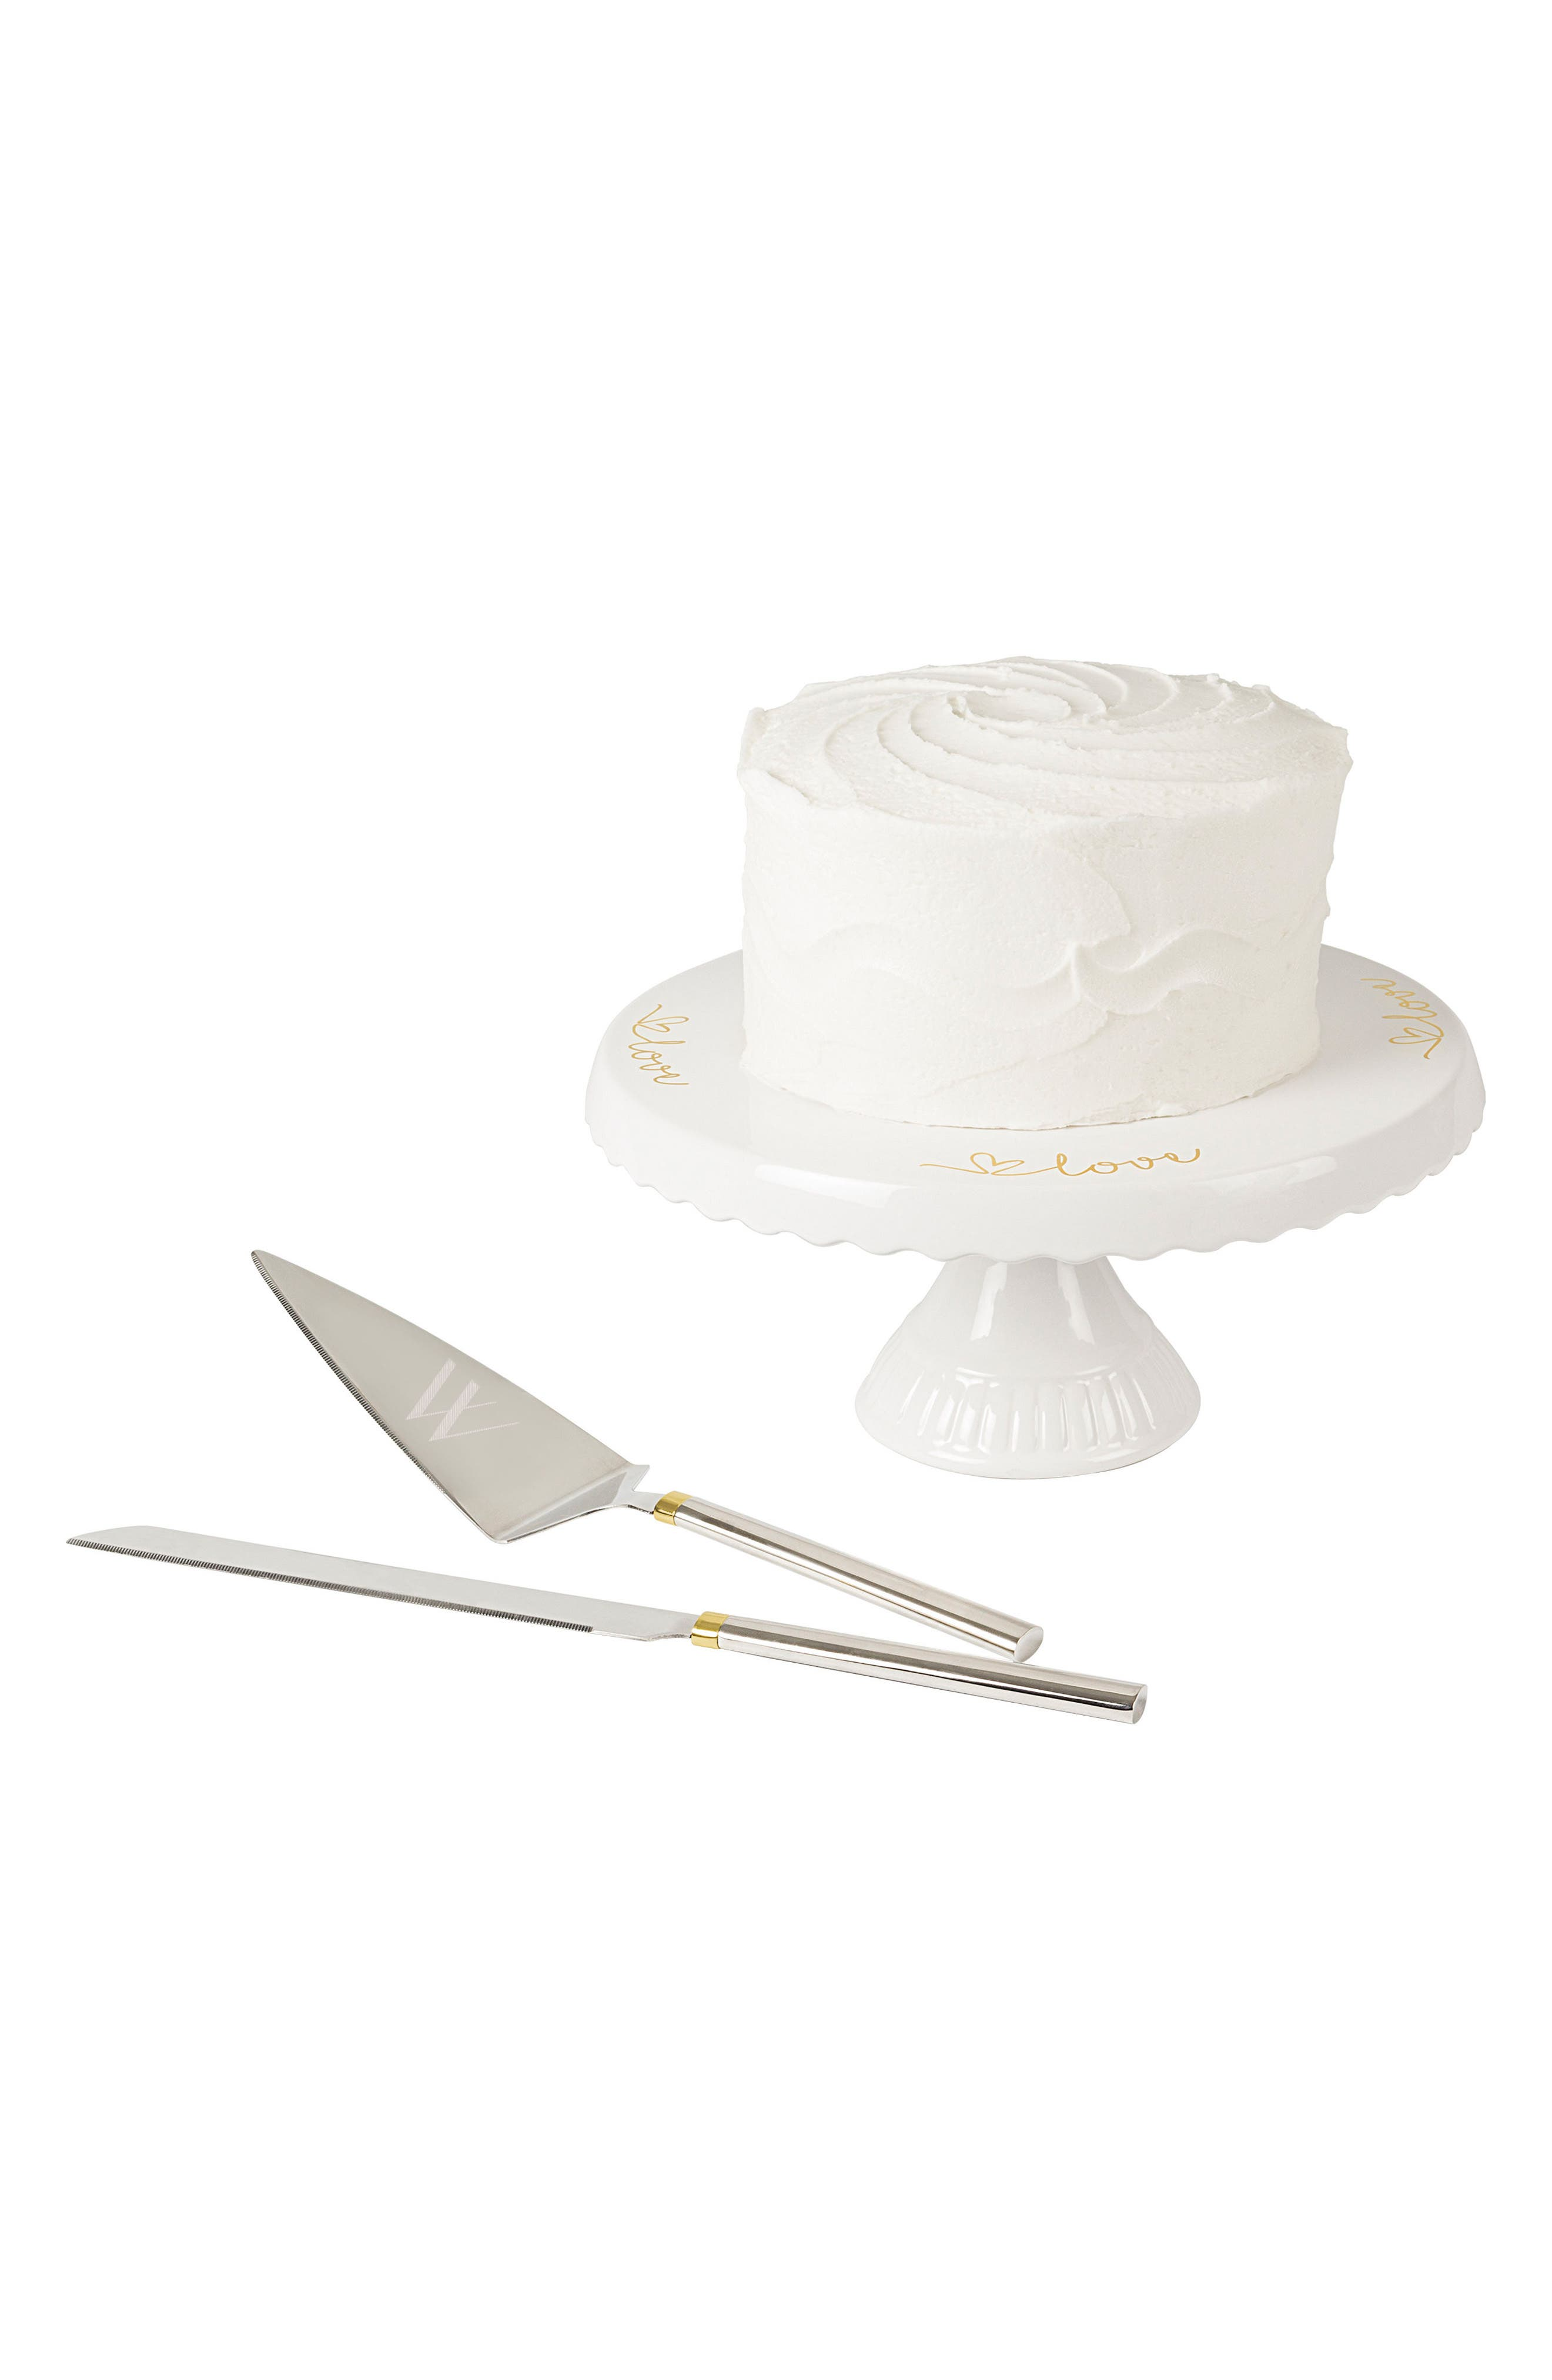 Love Monogram Cake Stand & Server Set,                             Main thumbnail 24, color,